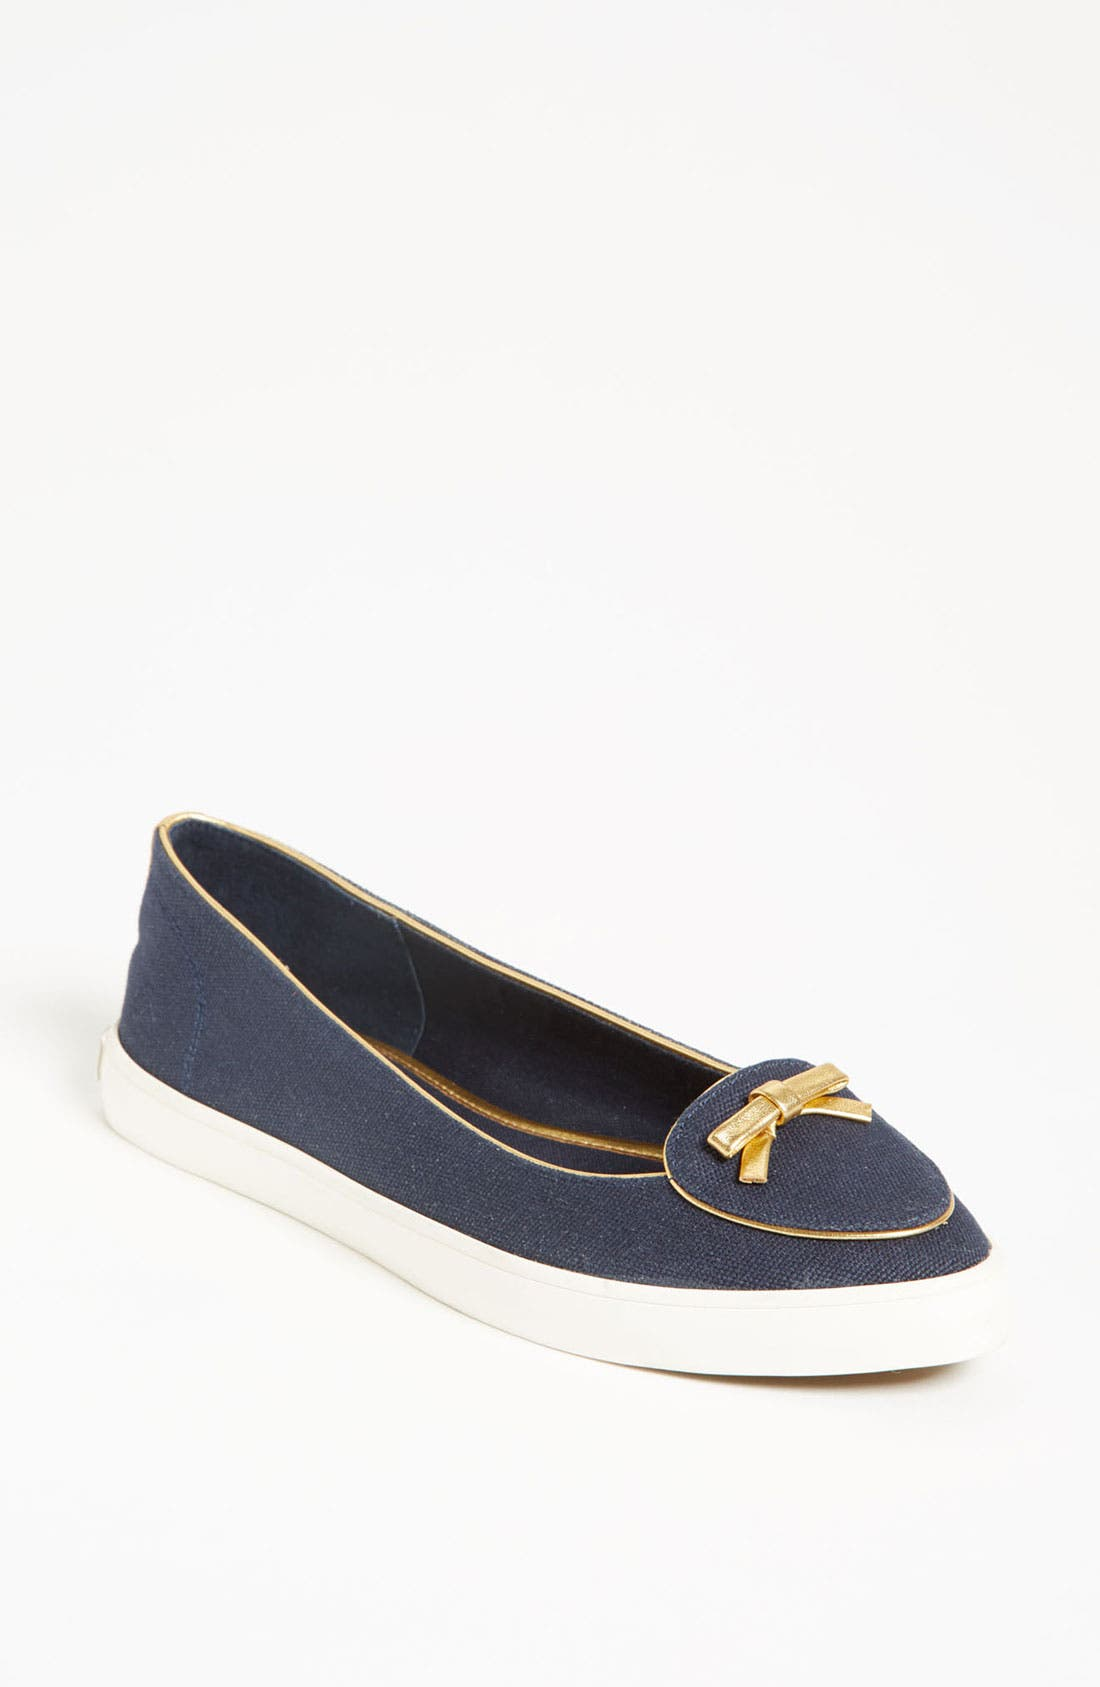 Alternate Image 1 Selected - Tory Burch 'Dakota' Sneaker